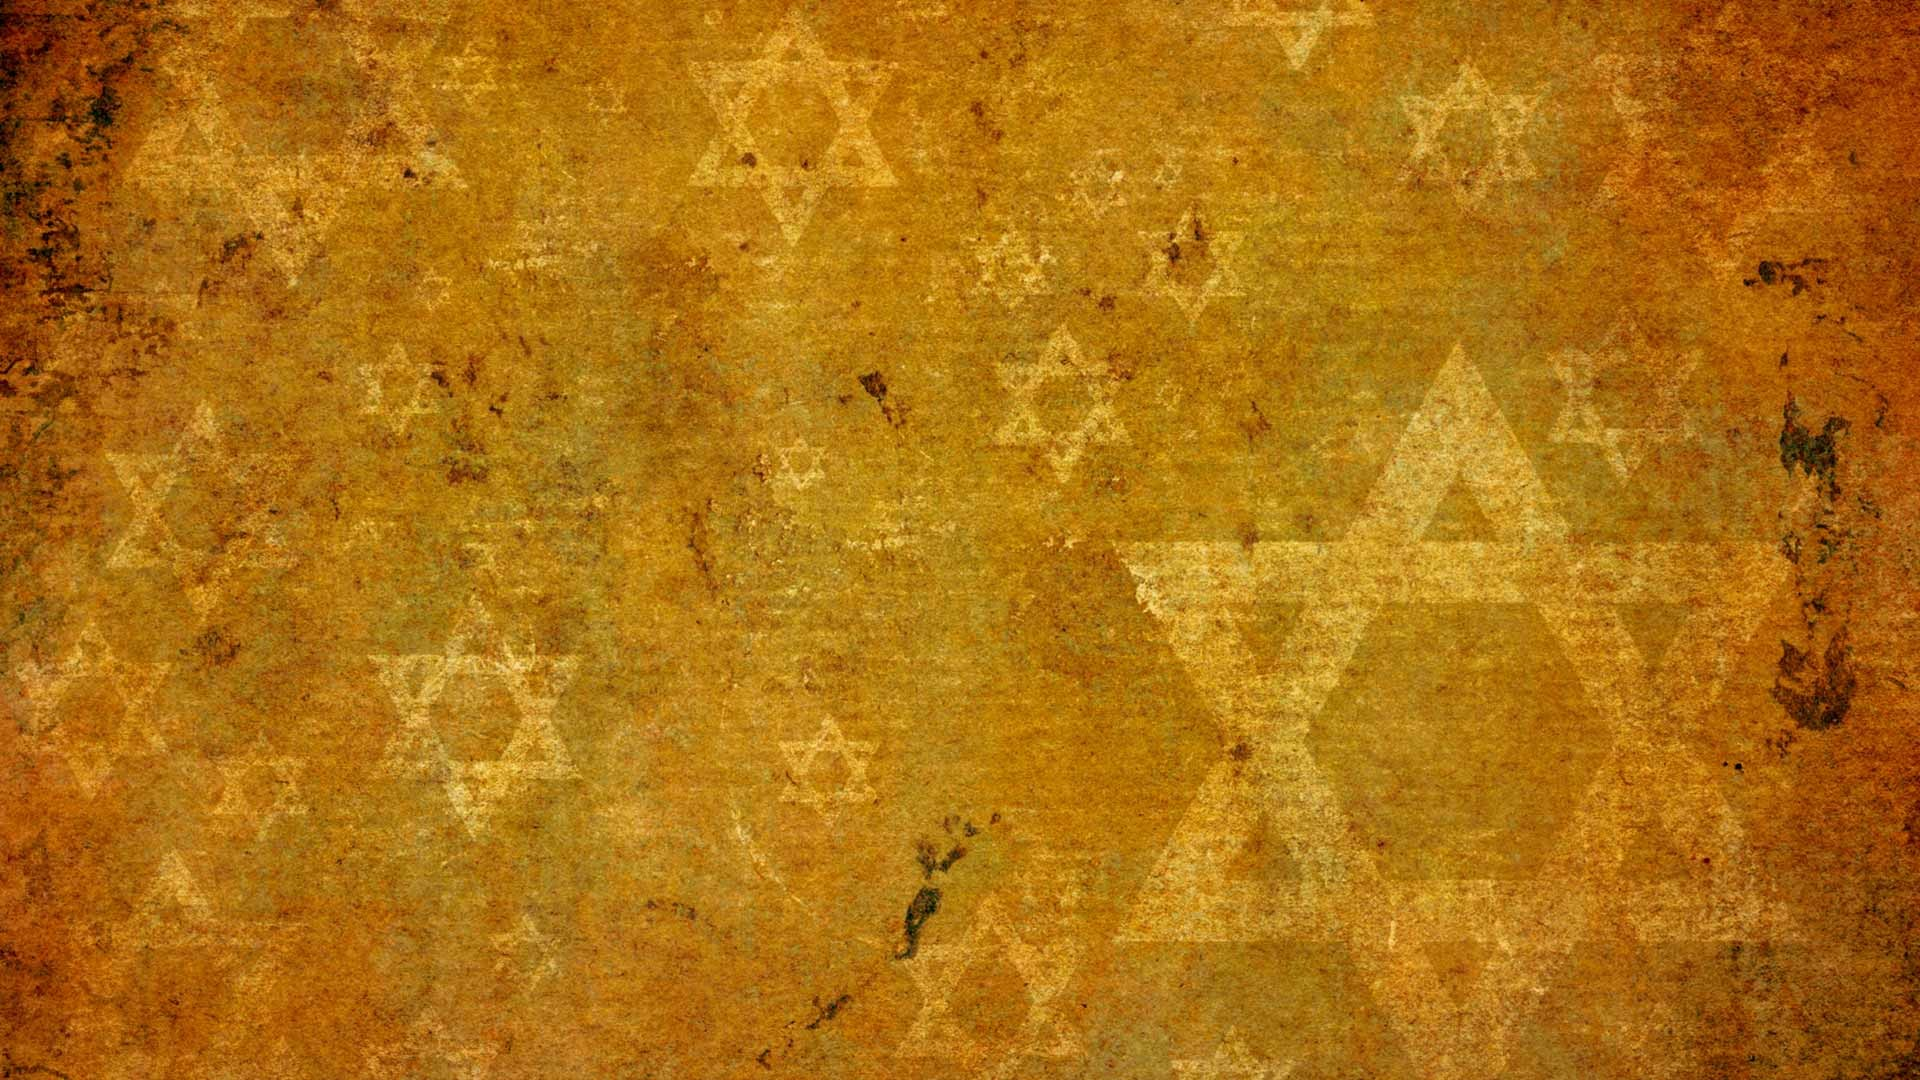 1920x1080 Displaying 15> Images For - Jewish Background.